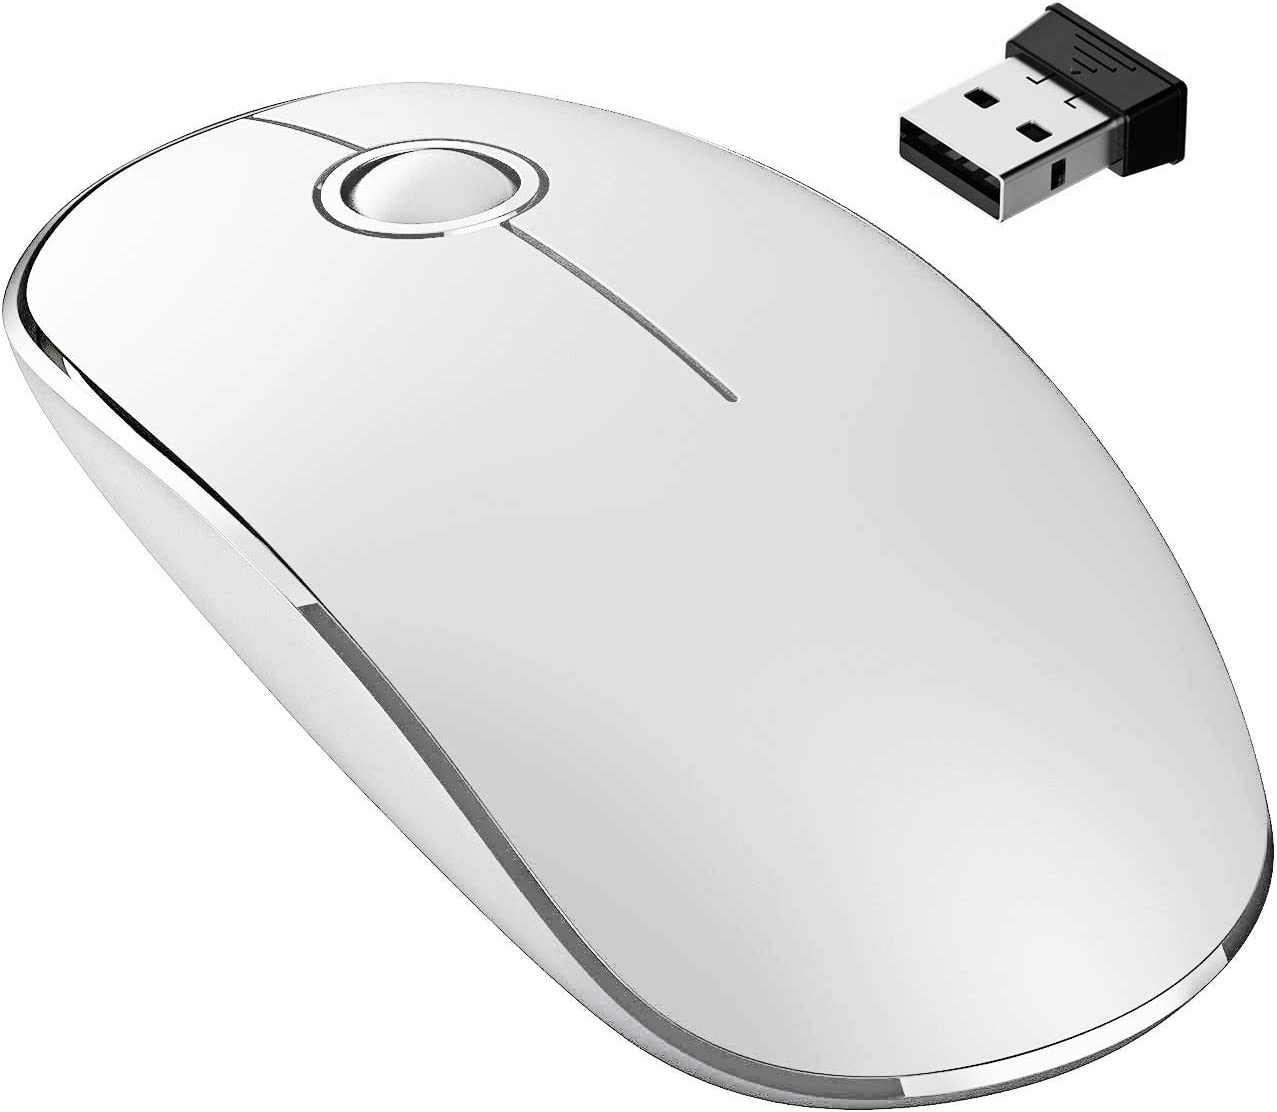 VicTsing 2.4G Slim Wireless Mouse with Nano Receiver, Noiseless and Silent Click with 1600 DPI for PC, Laptop, Tablet, Computer, and Mac, White and Silver (Renewed)